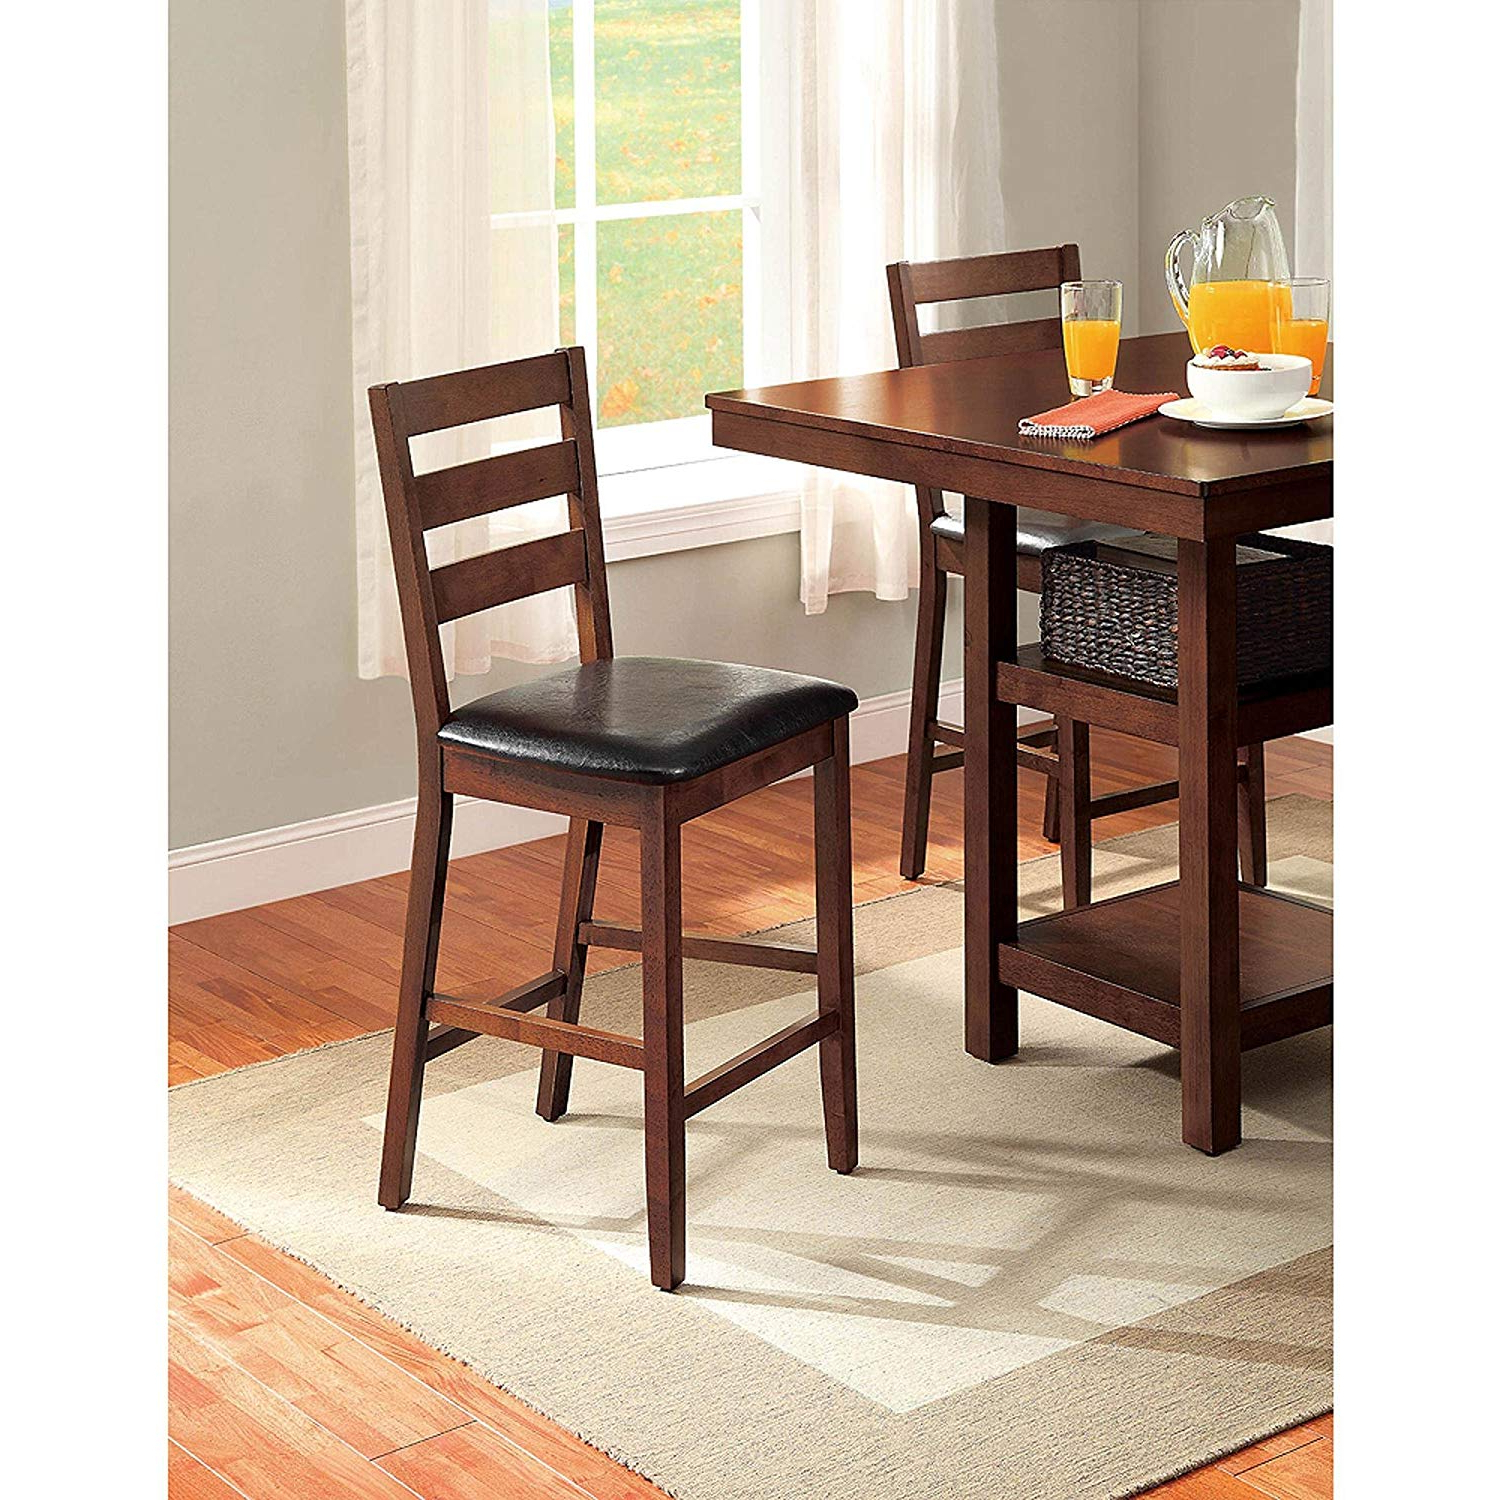 Popular 5 Piece Dalton Park Counter Height Dining Set, Mocha With Regard To Denzel 5 Piece Counter Height Breakfast Nook Dining Sets (View 15 of 20)